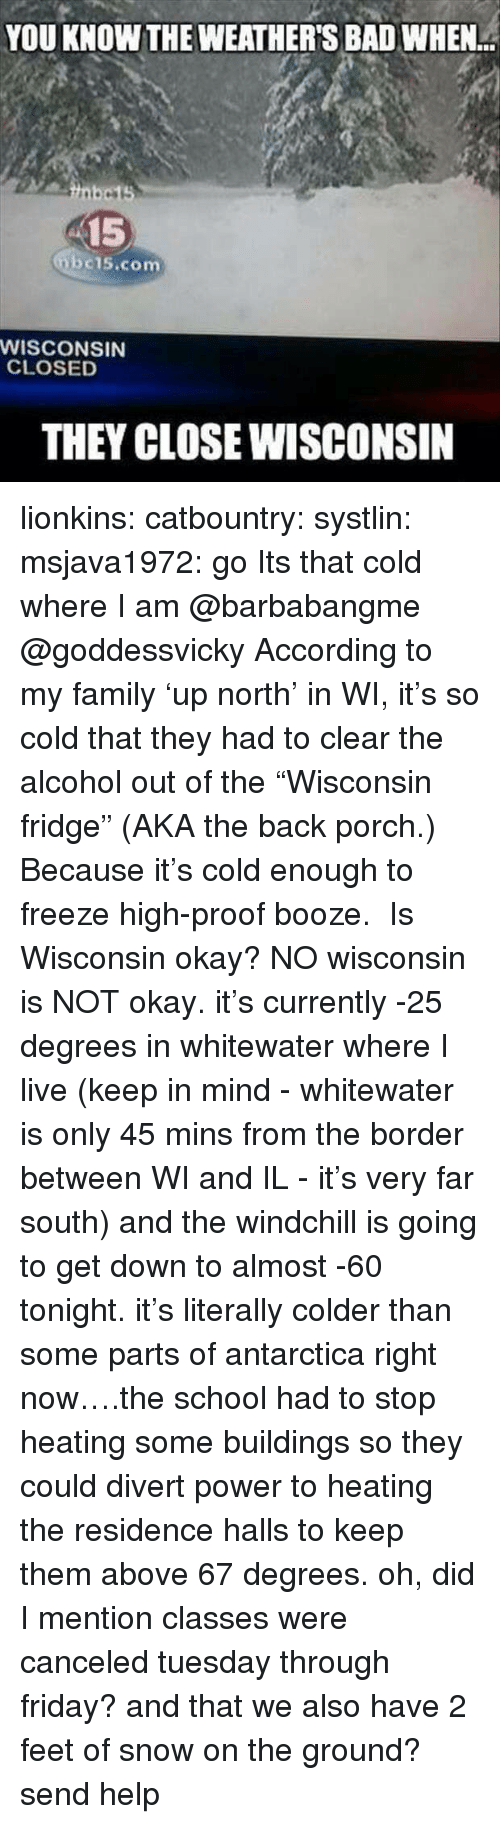 """Antarctica: YOU KNOW THE WEATHER'S BAD WHEN  15  bc15.com  WISCONSIN  CLOSED  THEY CLOSE WISCONSIN lionkins:  catbountry:  systlin:  msjava1972:  go Its that cold where I am @barbabangme @goddessvicky  According to my family'up north' in WI, it's so cold that they had to clear the alcohol out of the""""Wisconsin fridge"""" (AKA the back porch.) Because it's cold enough to freeze high-proof booze.  Is Wisconsin okay?  NO wisconsin is NOT okay. it's currently -25 degrees in whitewater where I live (keep in mind - whitewater is only 45 mins from the border between WI and IL - it's very far south) and the windchill is going to get down to almost -60 tonight. it's literally colder than some parts of antarctica right now….the school had to stop heating some buildings so they could divert power to heating the residence halls to keep them above 67 degrees. oh, did I mention classes were canceled tuesday through friday? and that we also have 2 feet of snow on the ground?send help"""